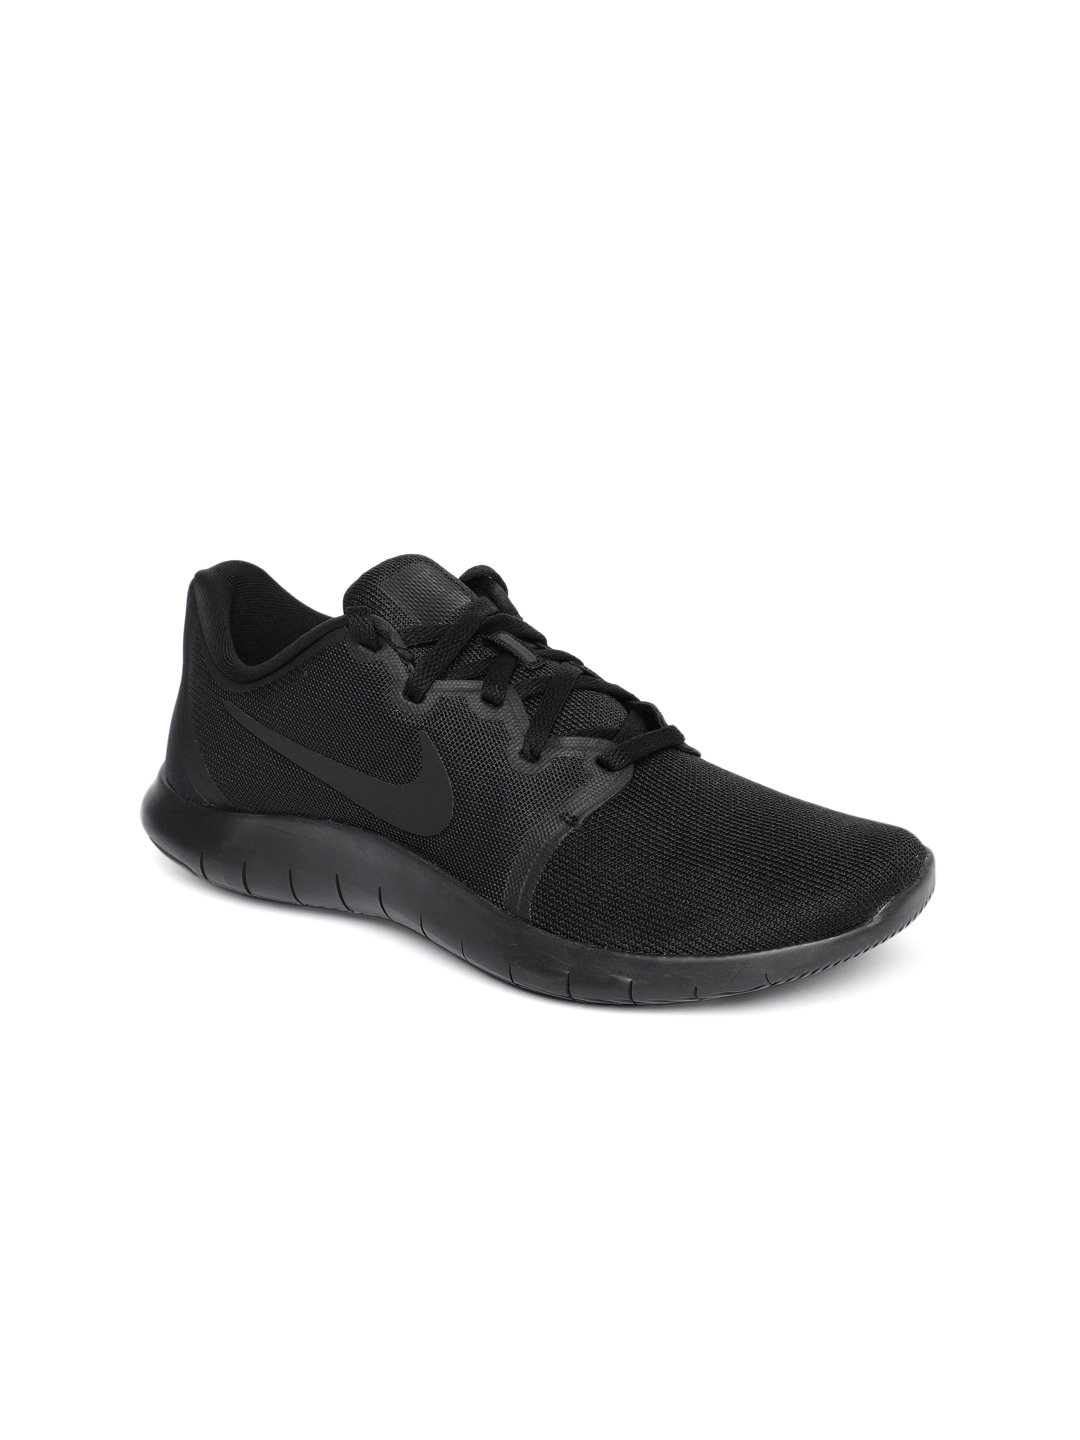 quality design a7c25 43ffb Women s Nike Sports Shoes - Buy Nike Sports Shoes for Women Online in India